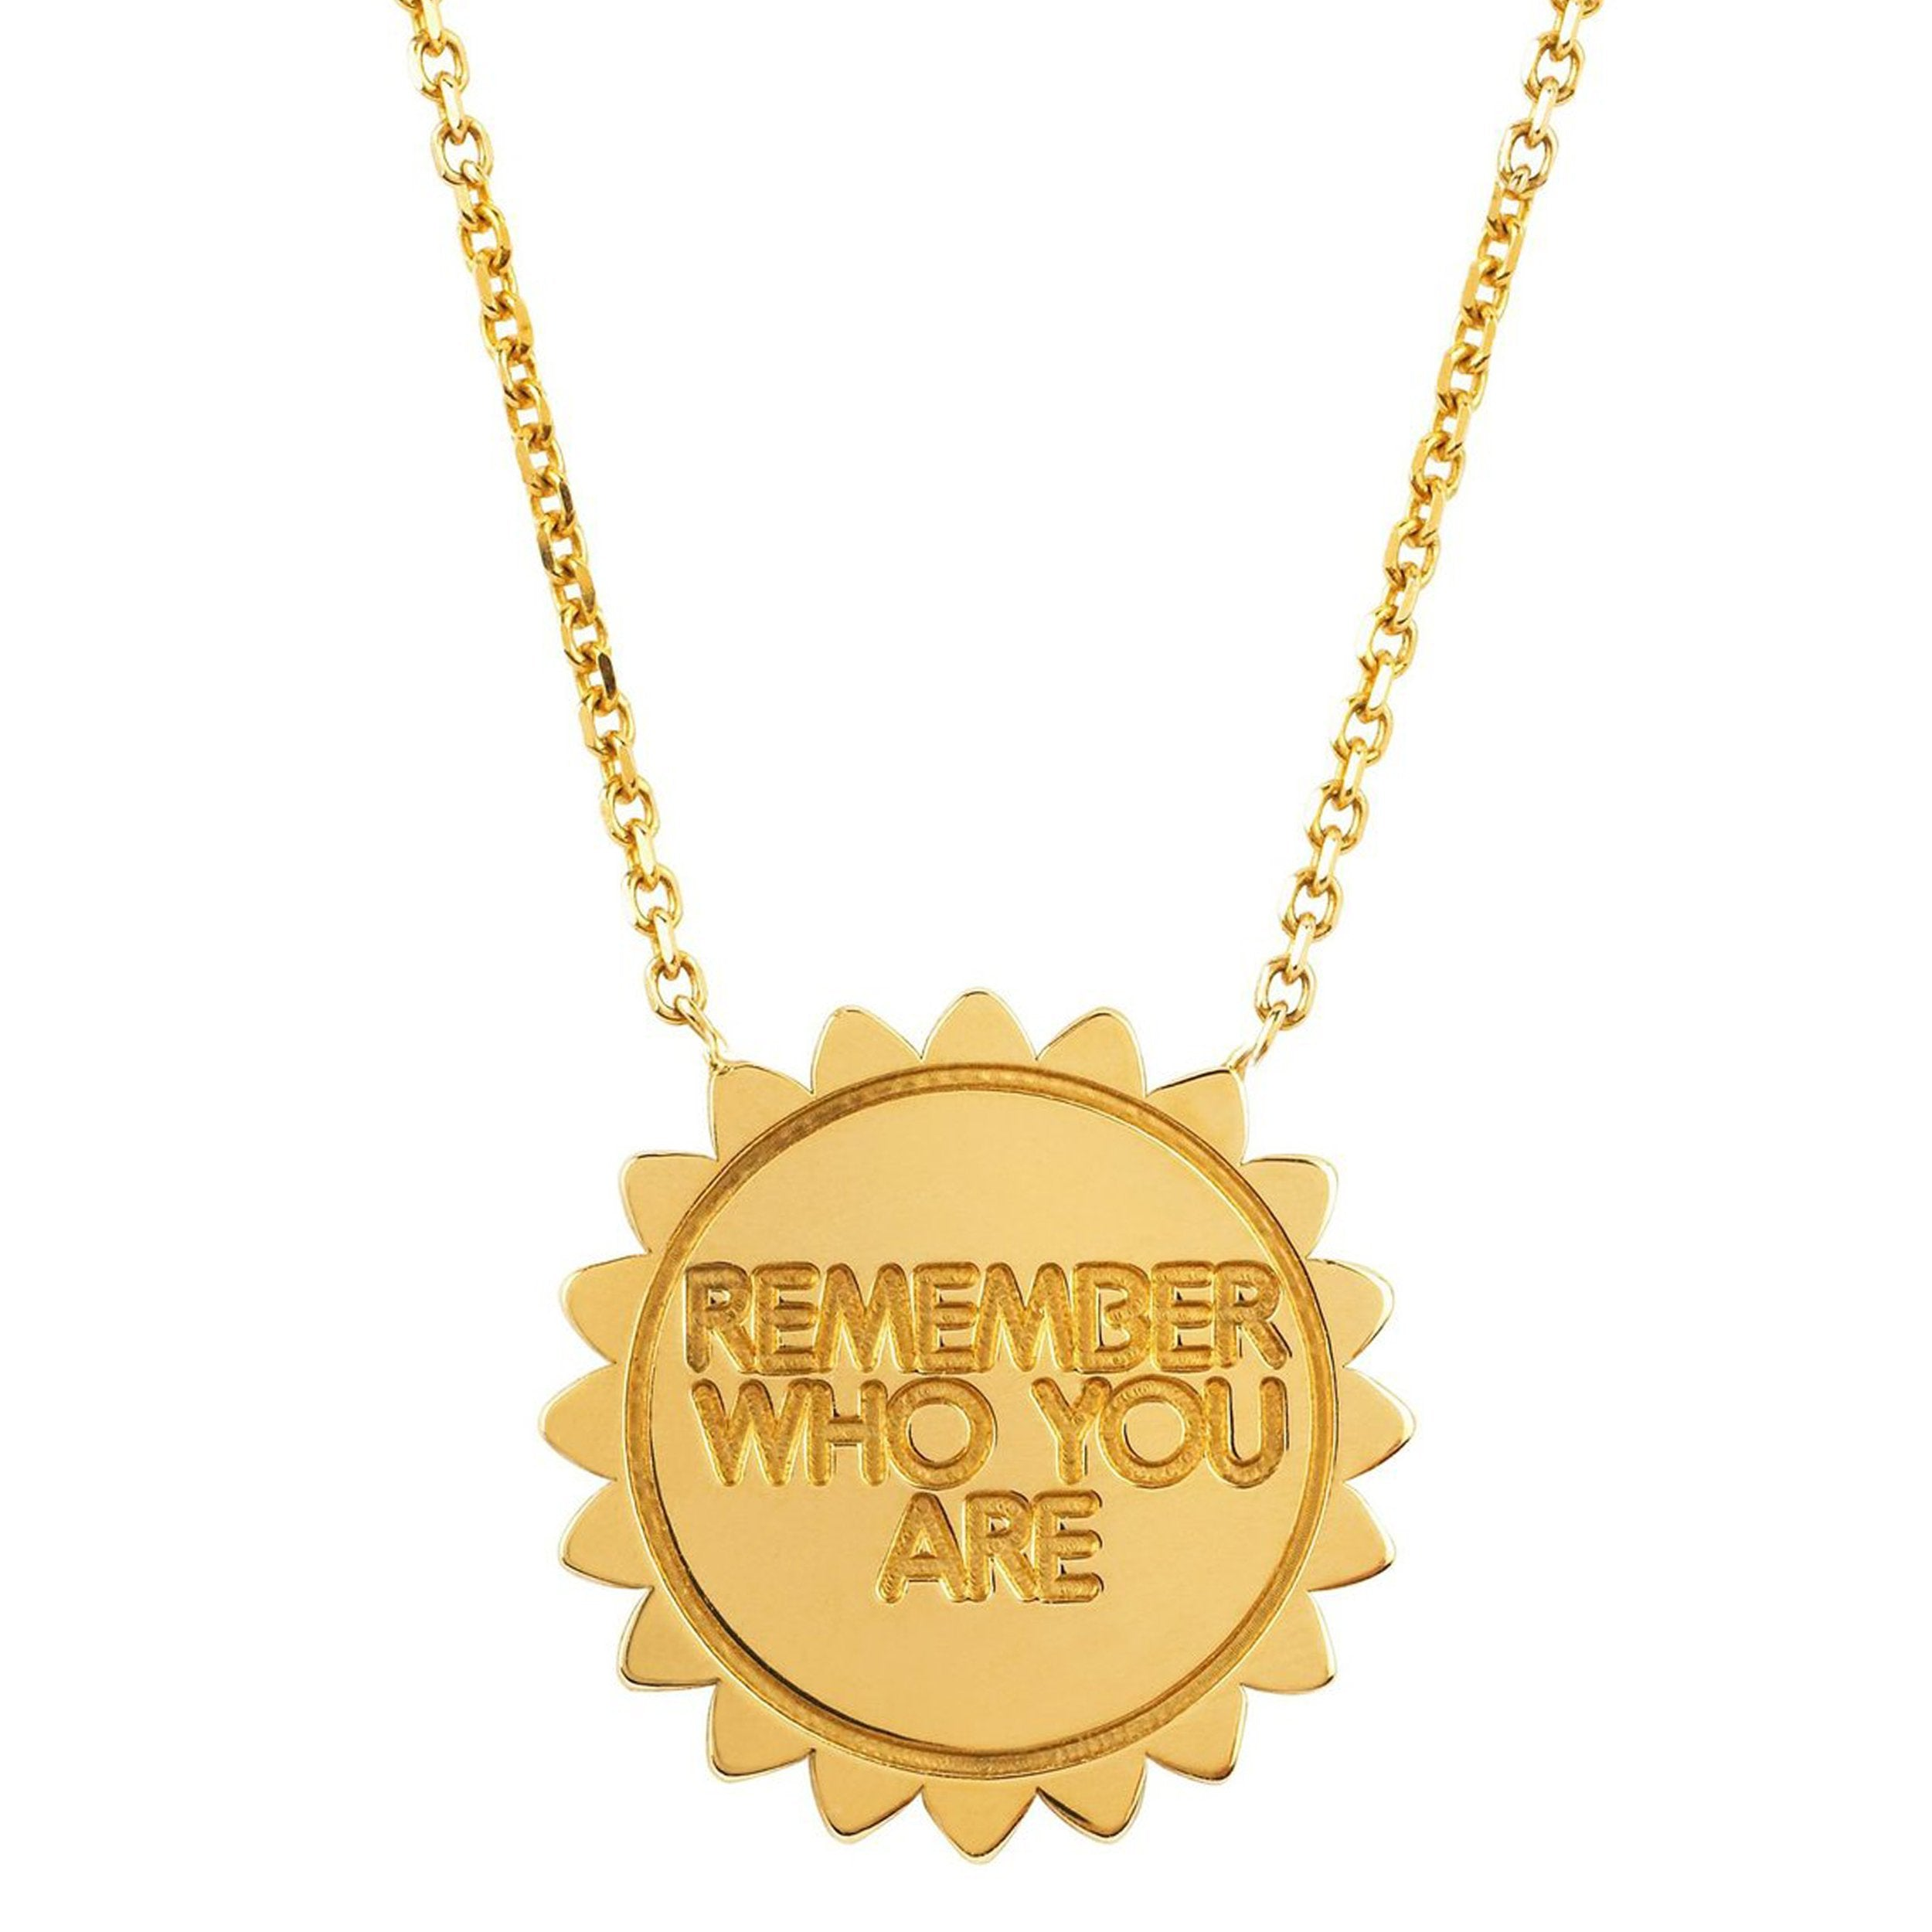 Classic 11:11 Sunshine Necklace with Diamonds